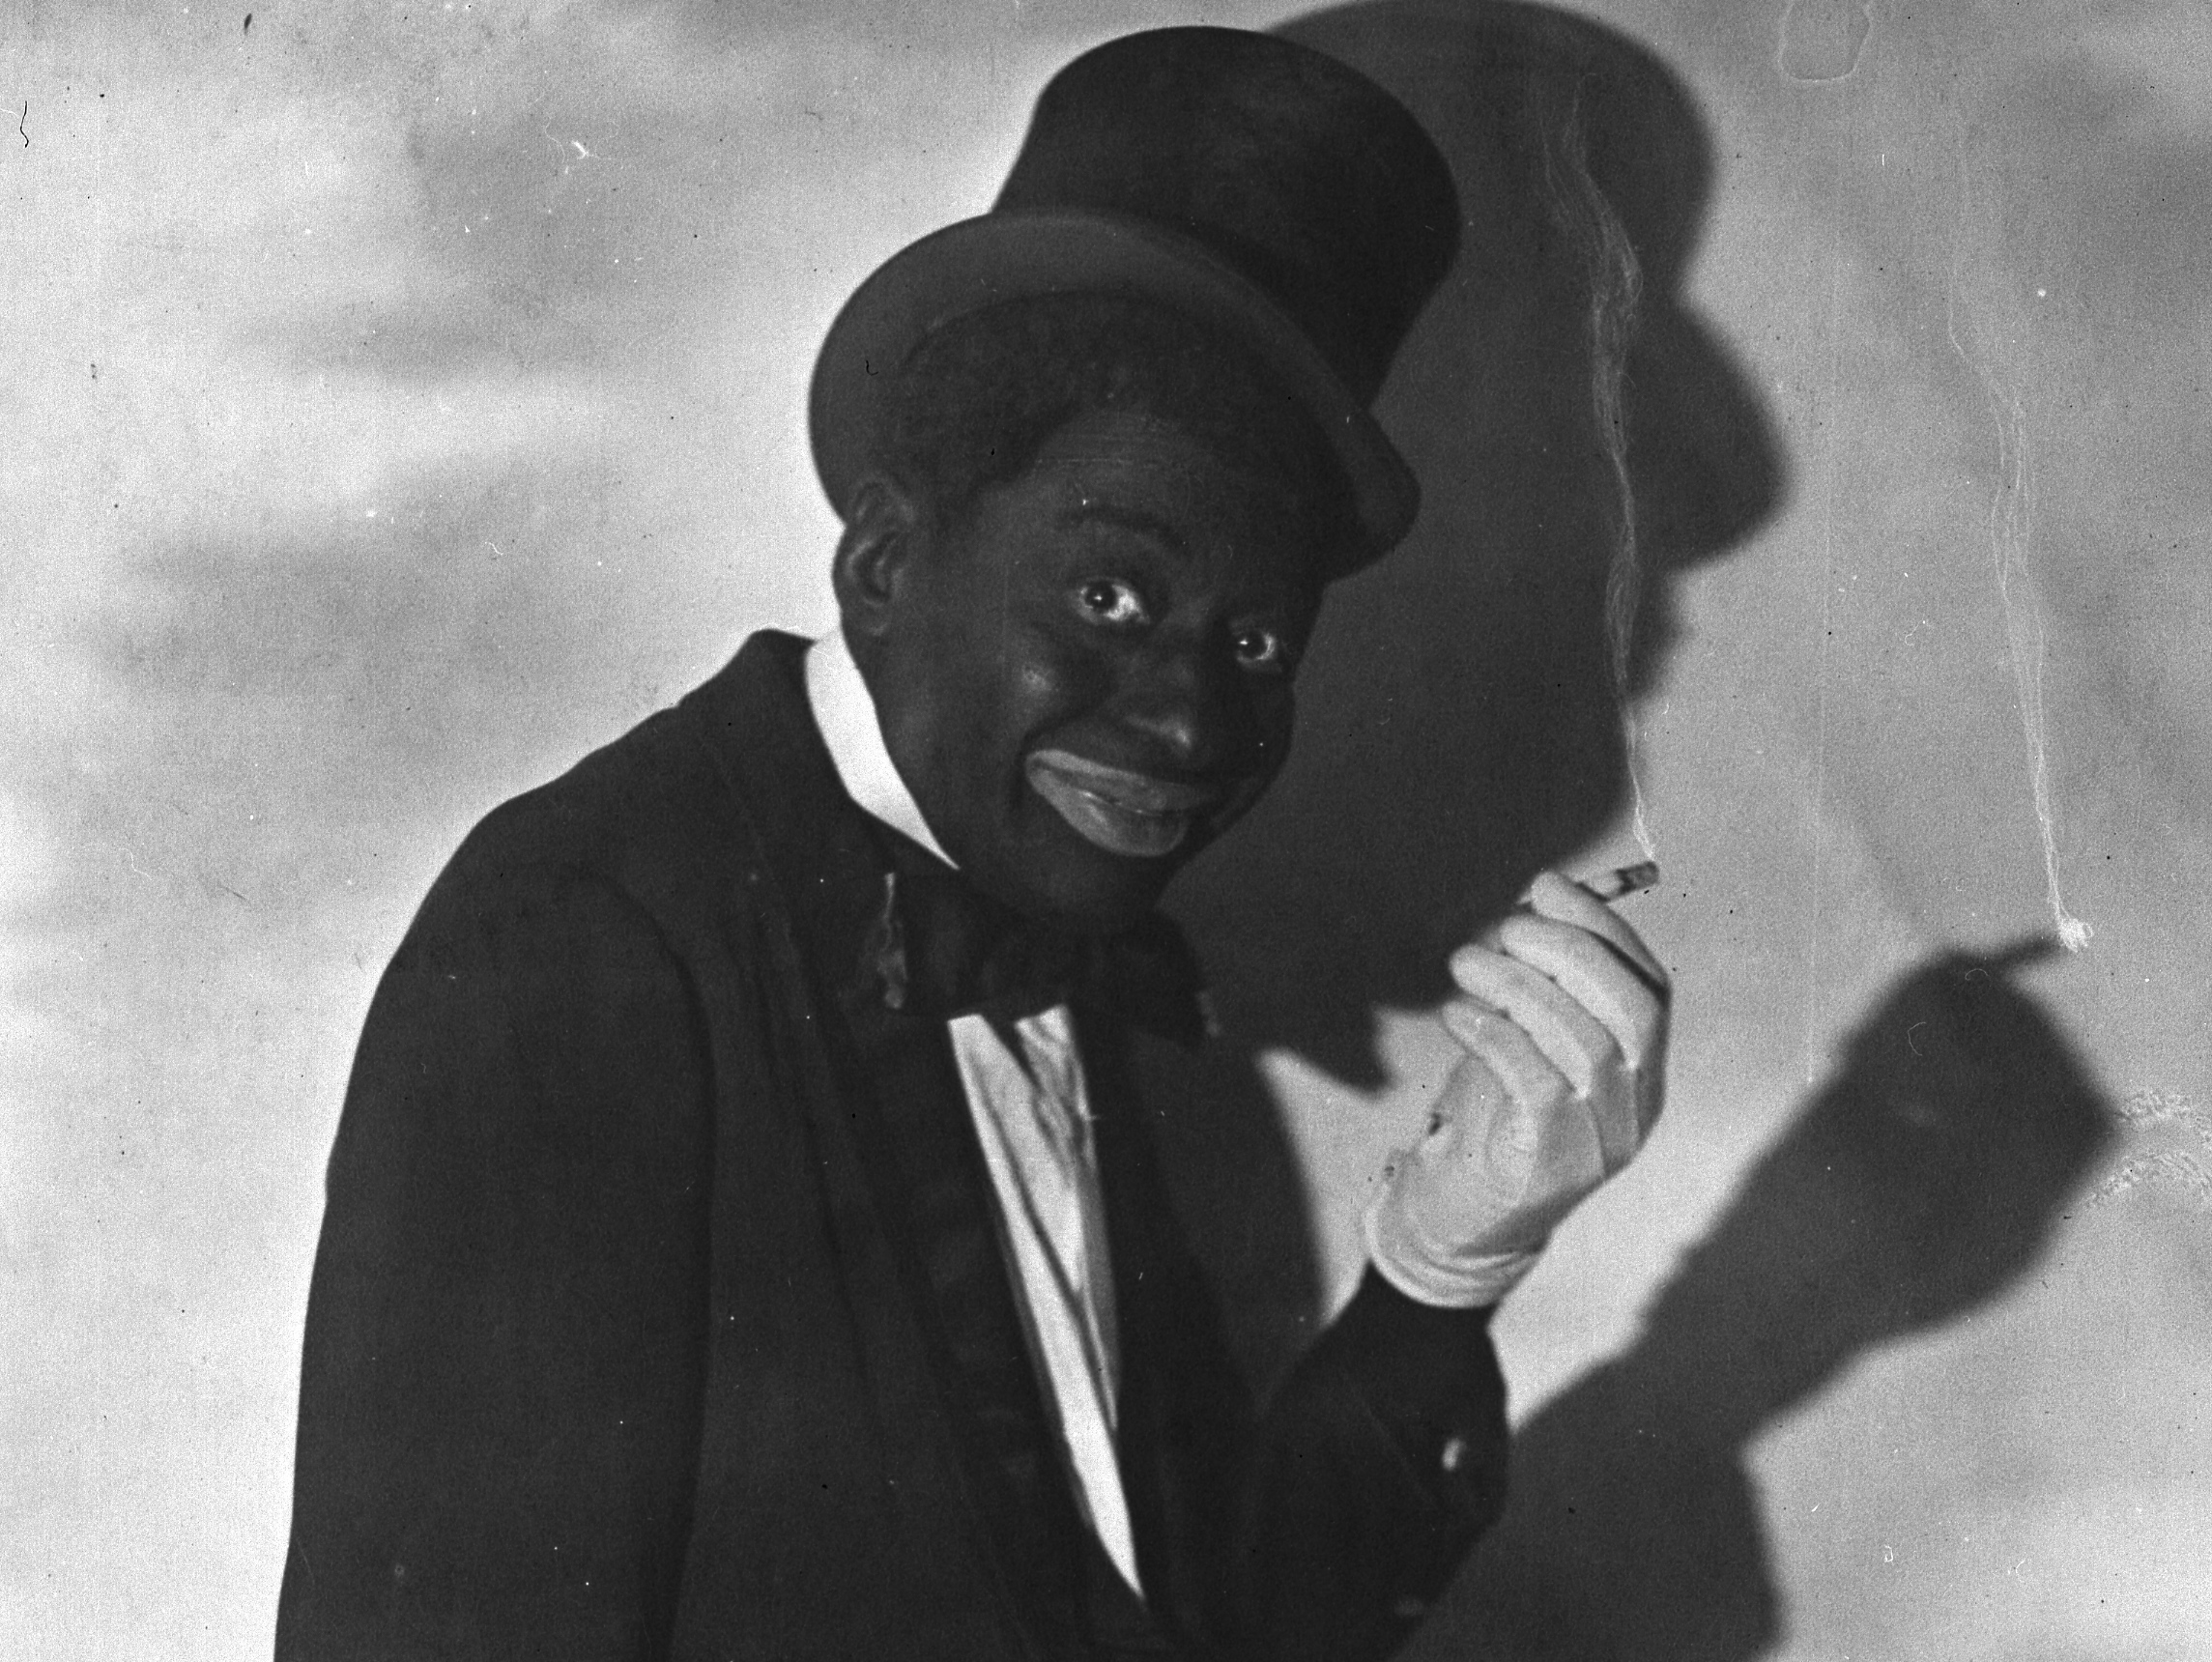 Bert Williams in blackface